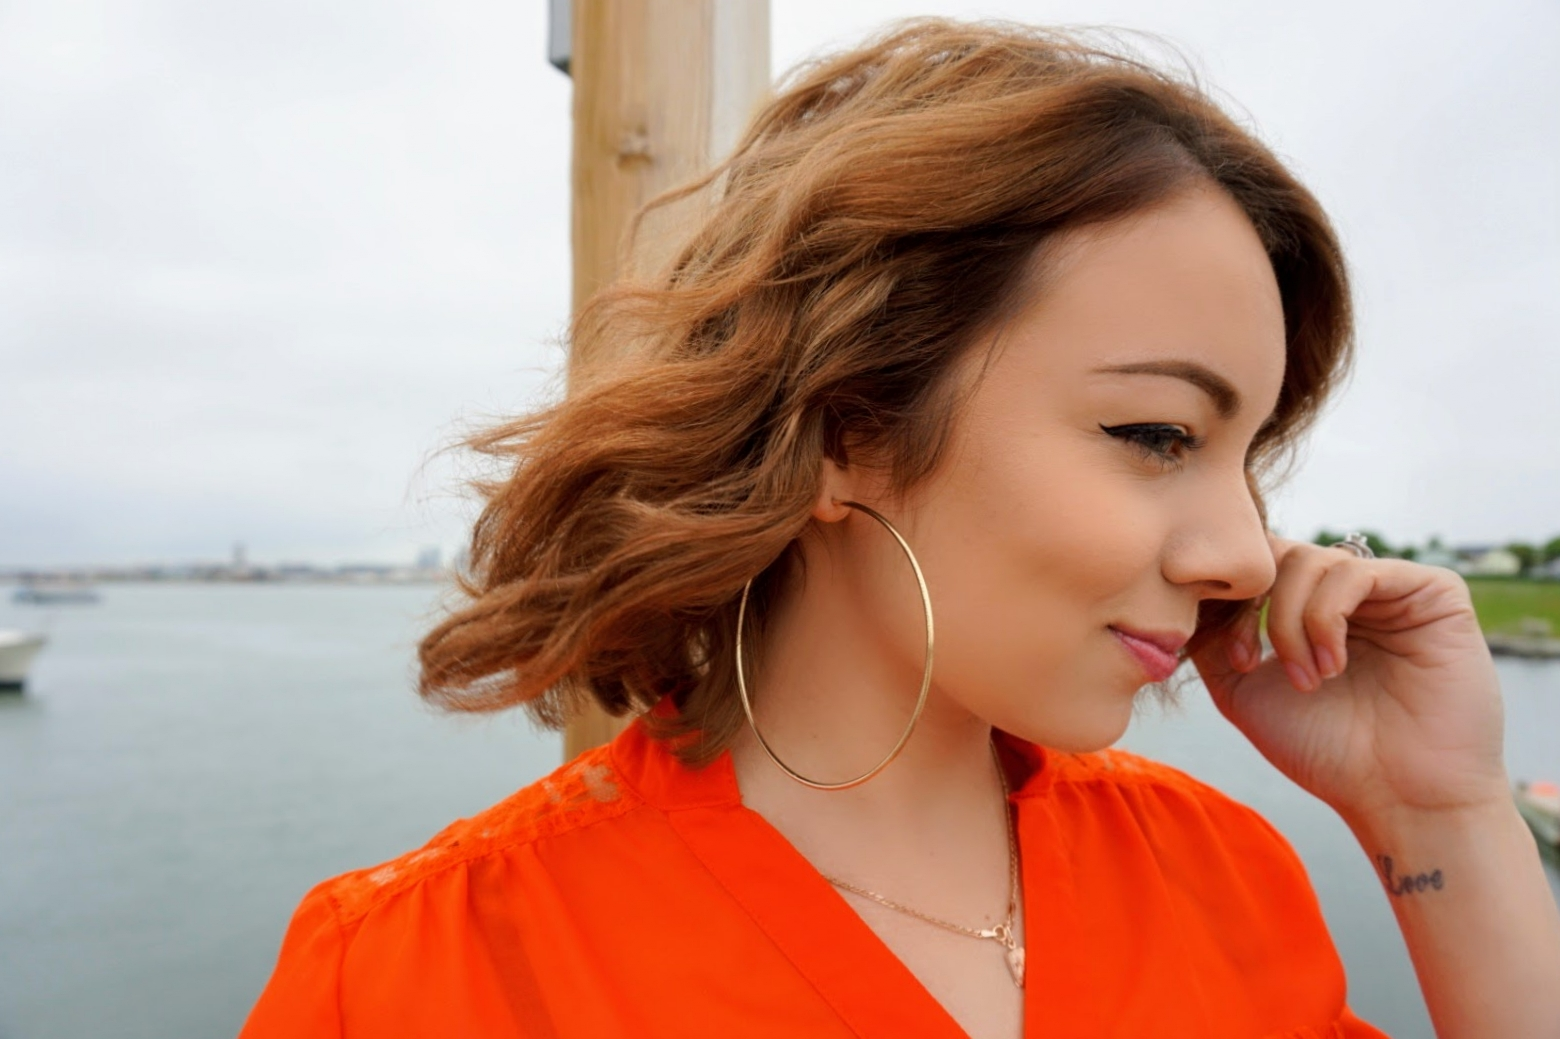 A portrait of a blogger looking to the side, wavy hair, golden hoop earrings, and a bright orange blouse.